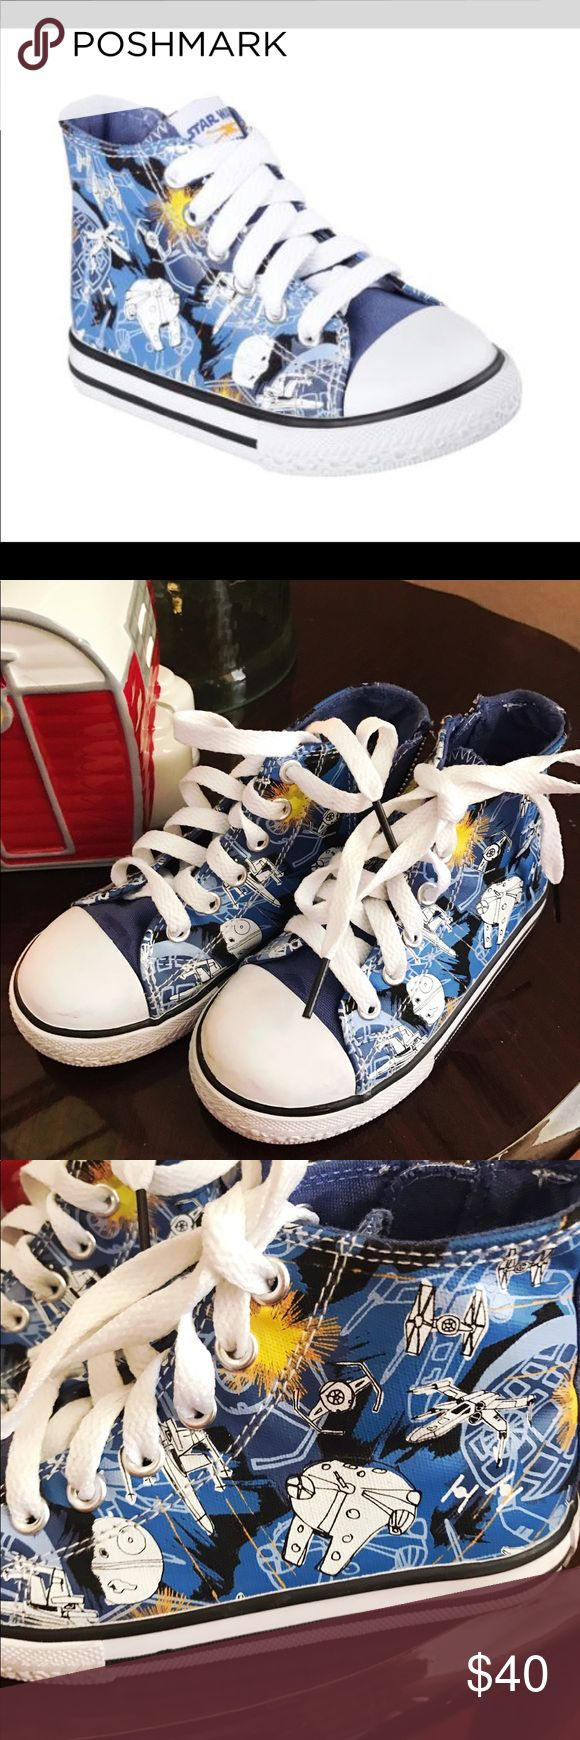 Star Wars sneakers by Skechers Adorable Skechers high top sneakers in excellent condition! My son wore these less than 5x. Star Wars theme printed across shoe. Retailed for over 50.00. Has a size zip for easier foot entry.  ❌NO TRADED Skechers Shoes Sneakers